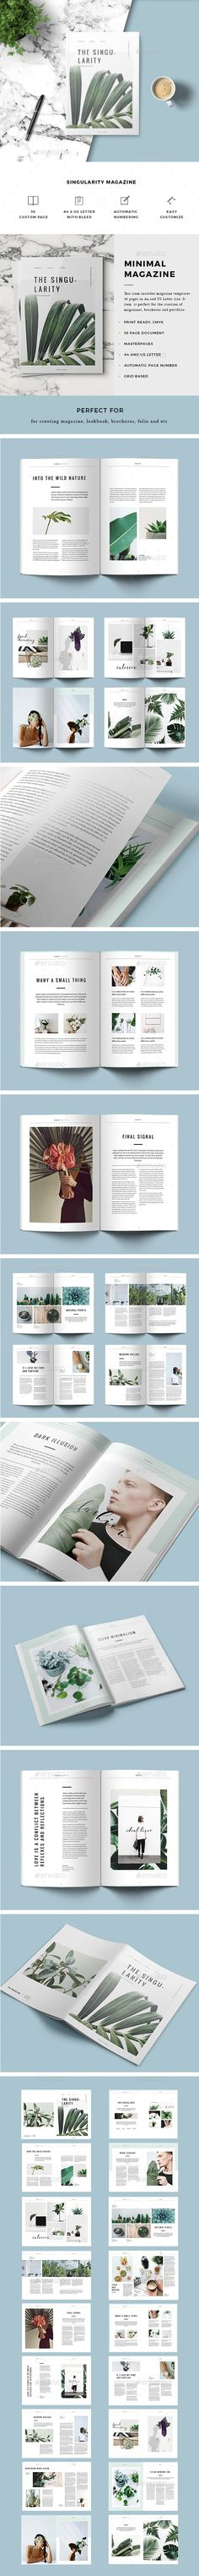 Magazine - Magazines Print Templates Download here : https://graphicriver.net/item/magazine/19327819?s_rank=40&ref=Al-fatih